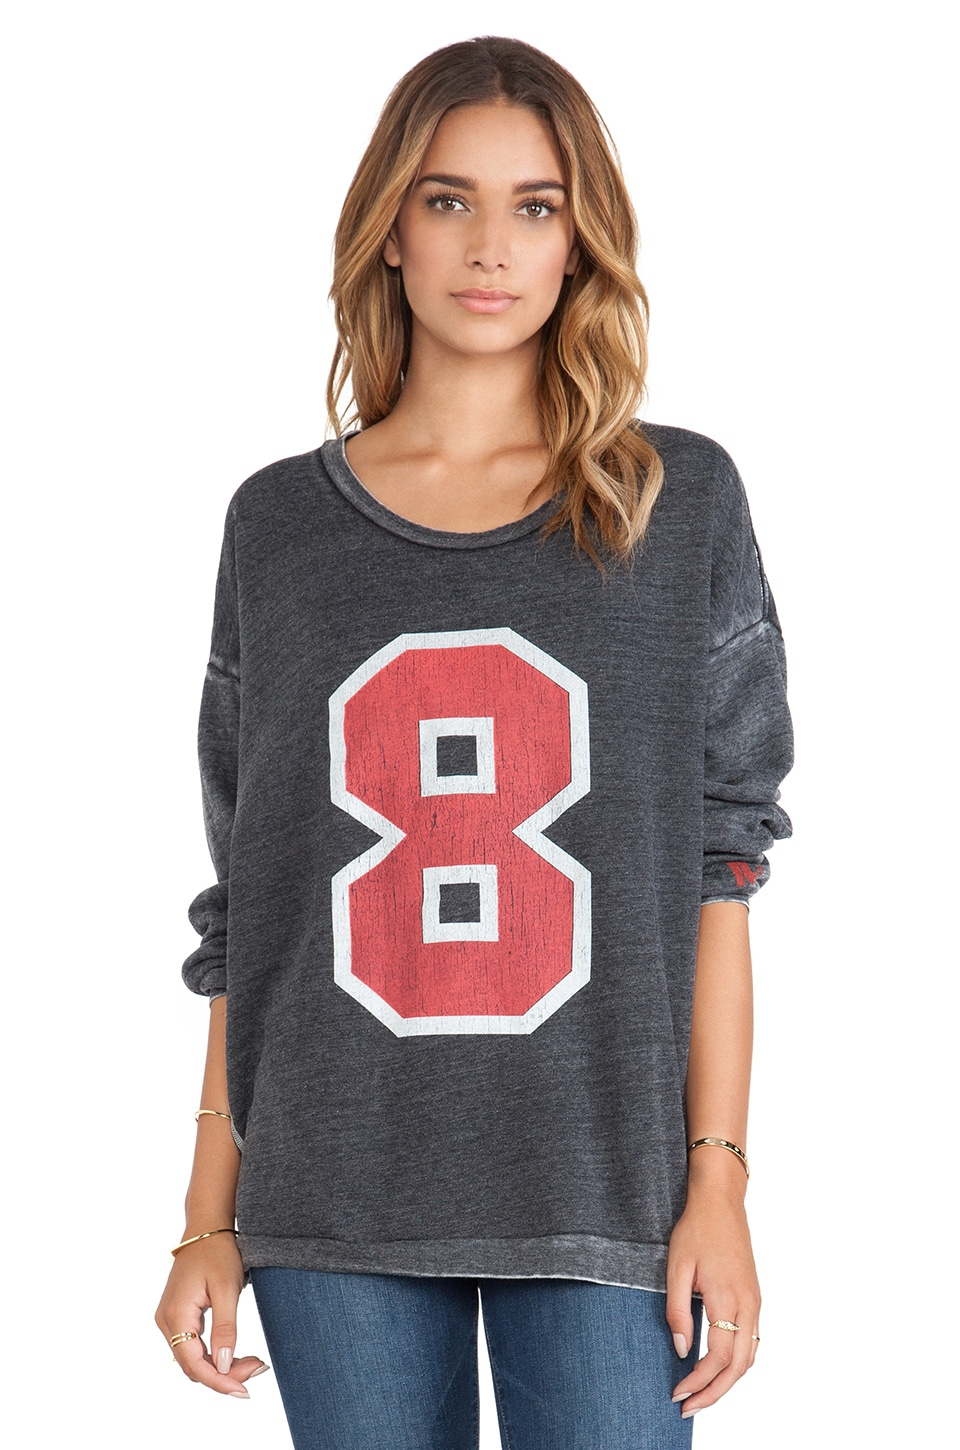 Rebel Yell Number 8 Strokes Warm Up Sweatshirt in Black